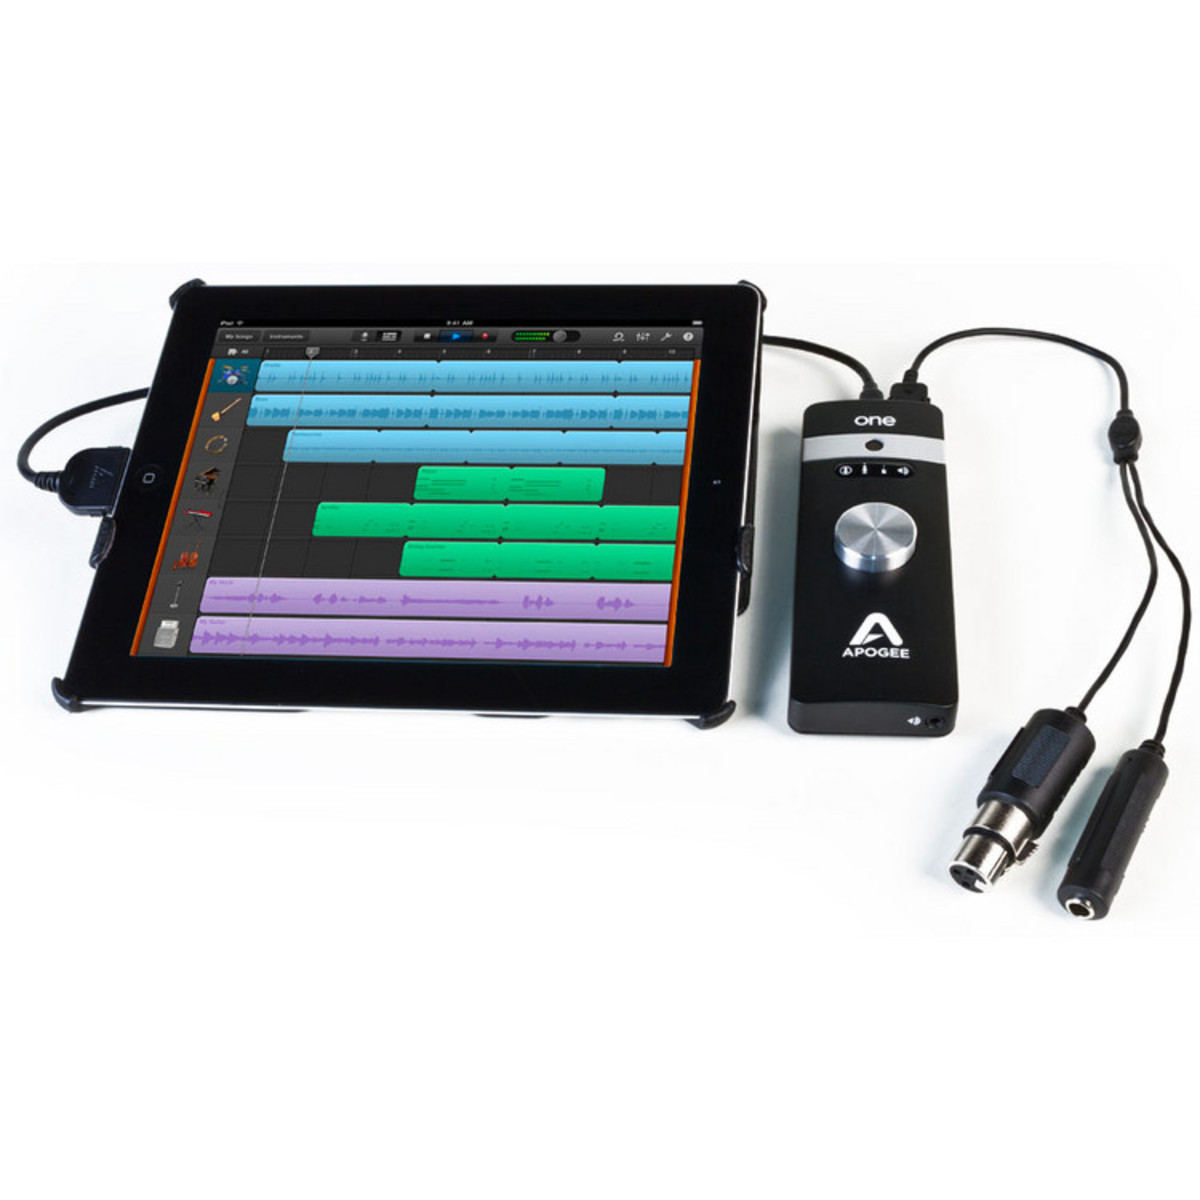 apogee one usb mic and audio interface for ipad and mac nearly new at gear4music. Black Bedroom Furniture Sets. Home Design Ideas